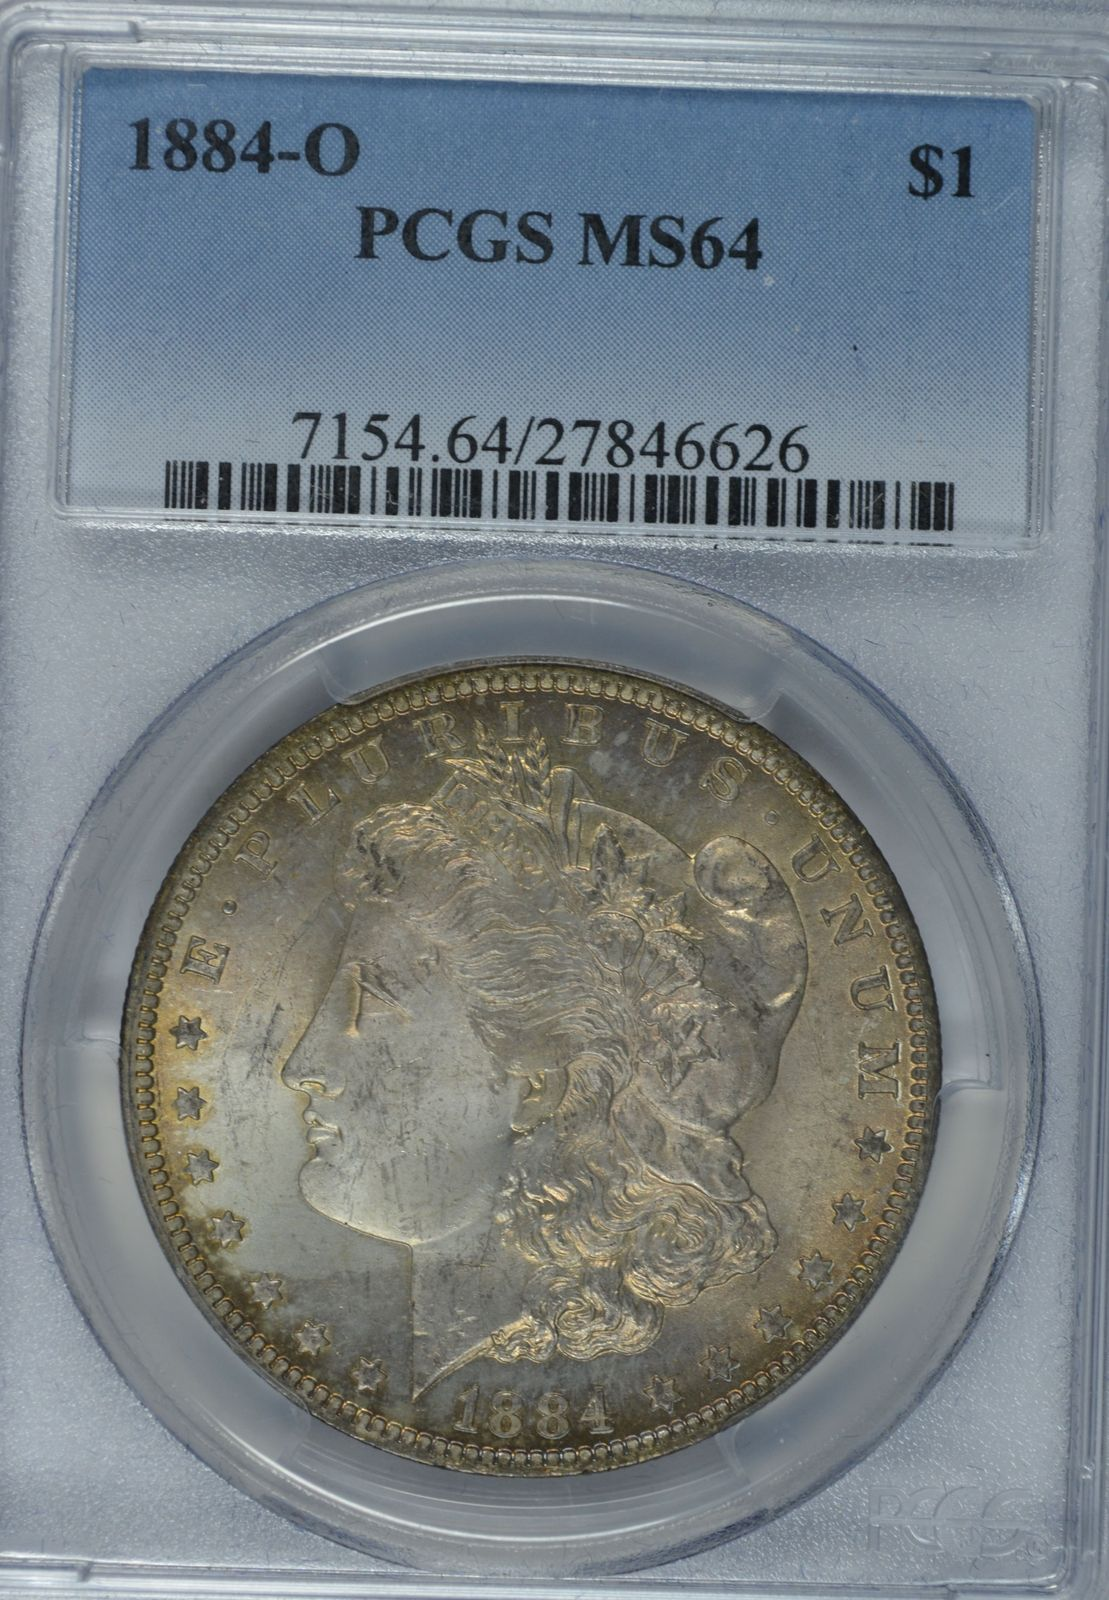 Primary image for 1884 O Morgan silver dollar PCGS MS64